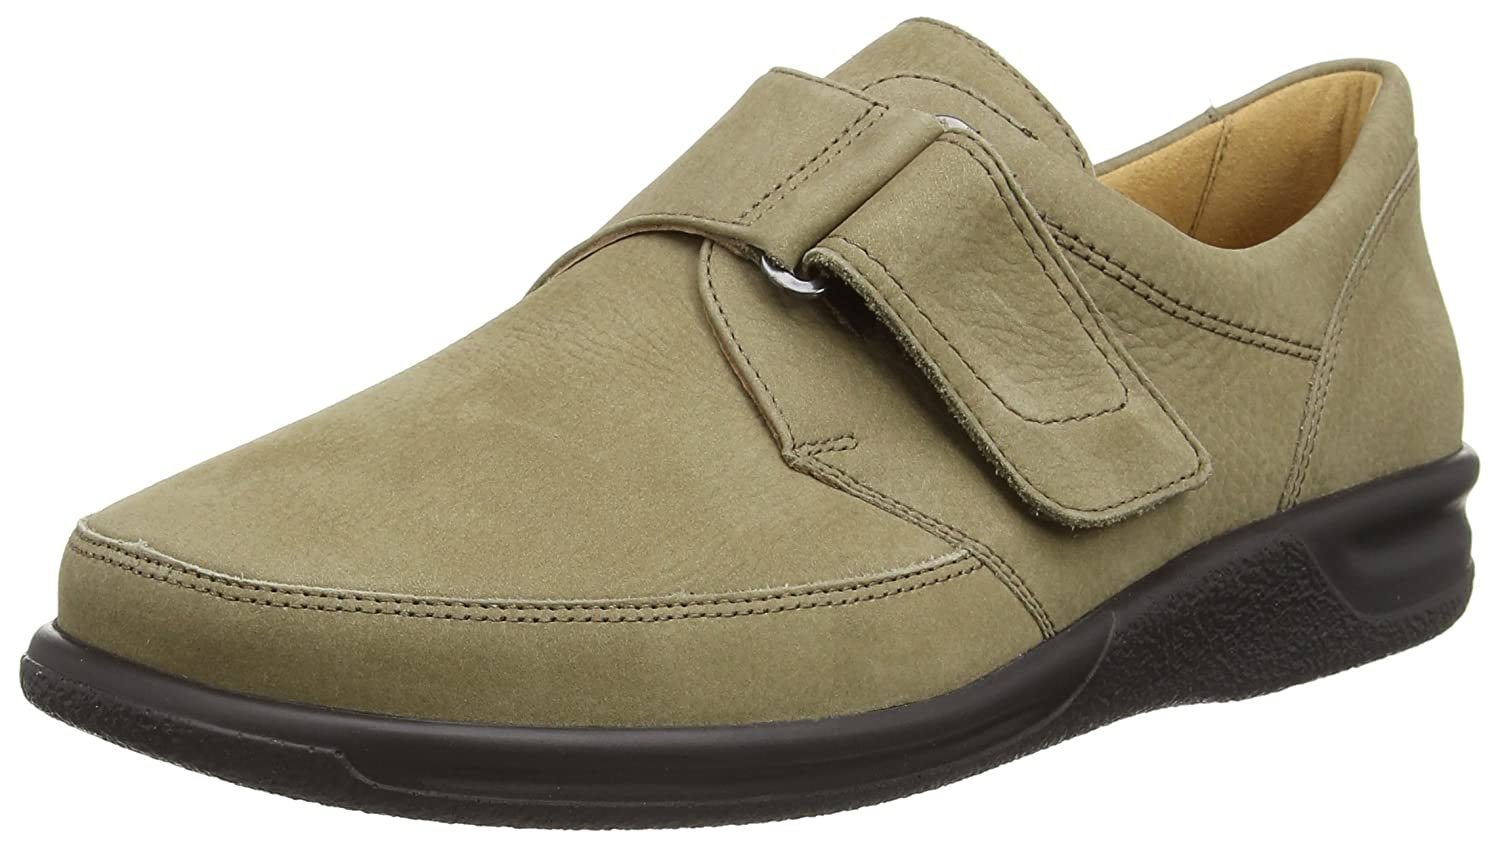 Ganter Sensitiv Kurt, Weite K, Mocasines para Hombre